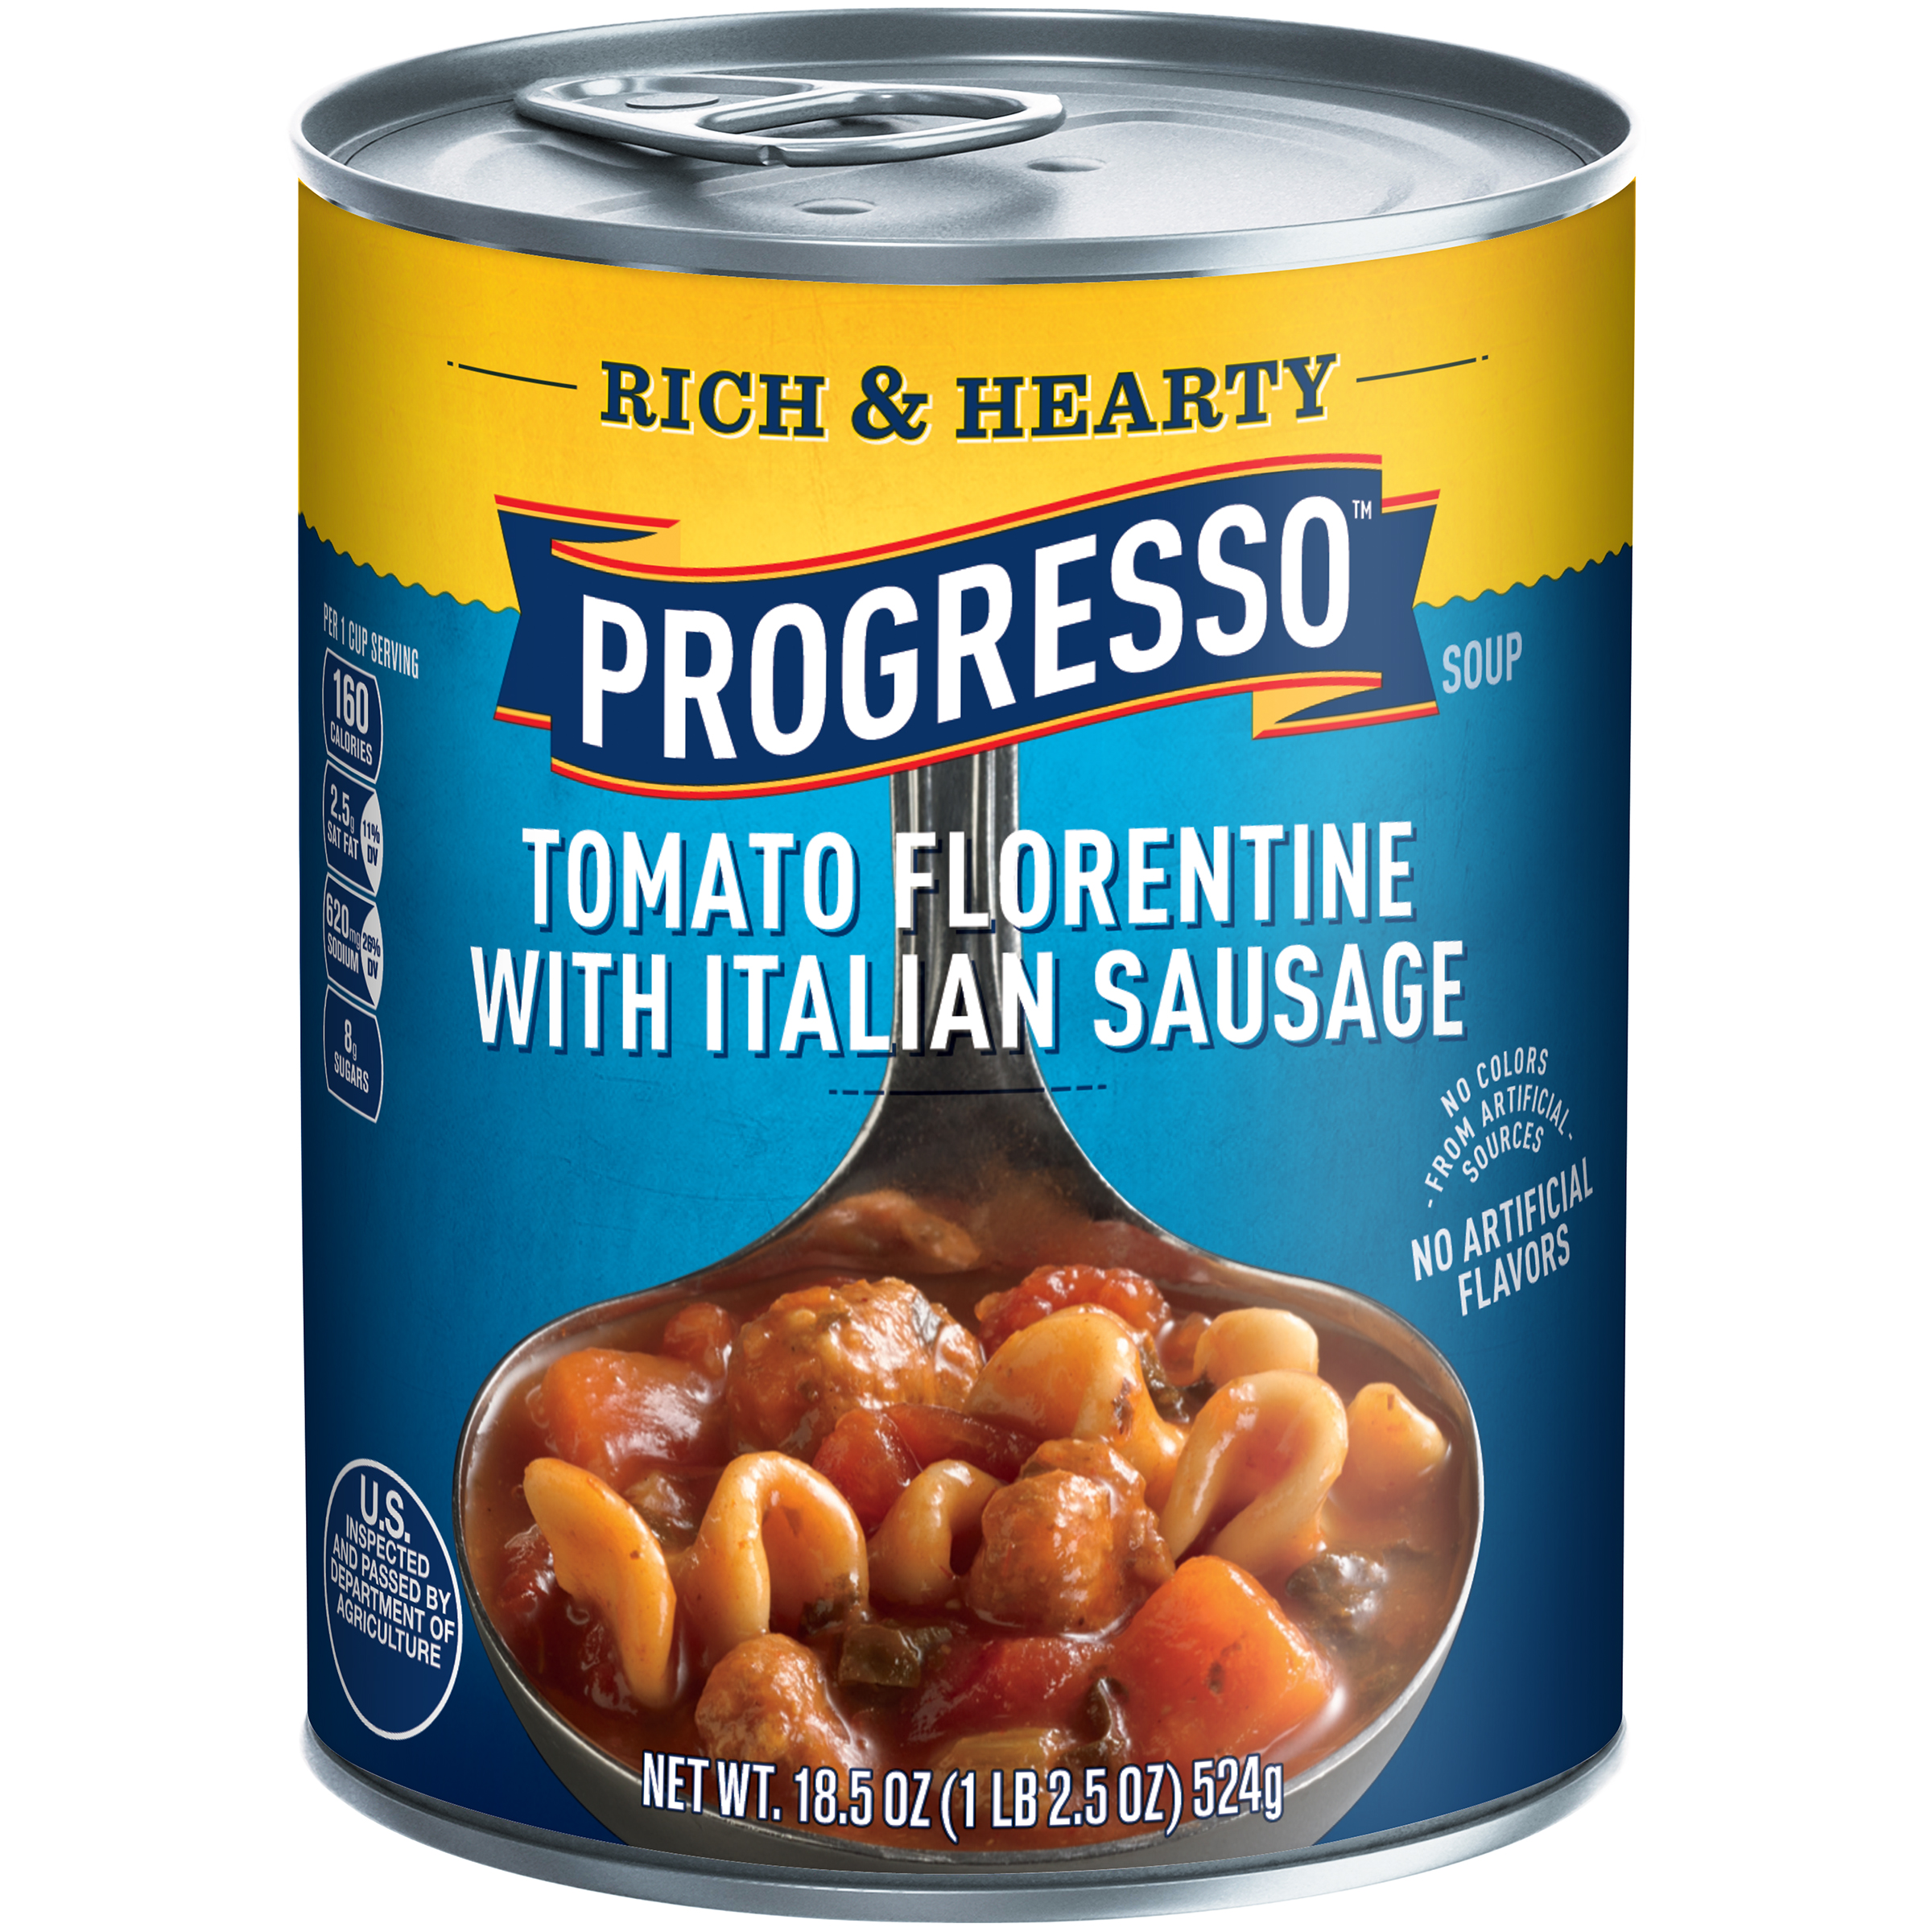 Progresso��� Rich & Hearty Tomato Florentine with Italian Sausage Soup 18.5 oz. Can